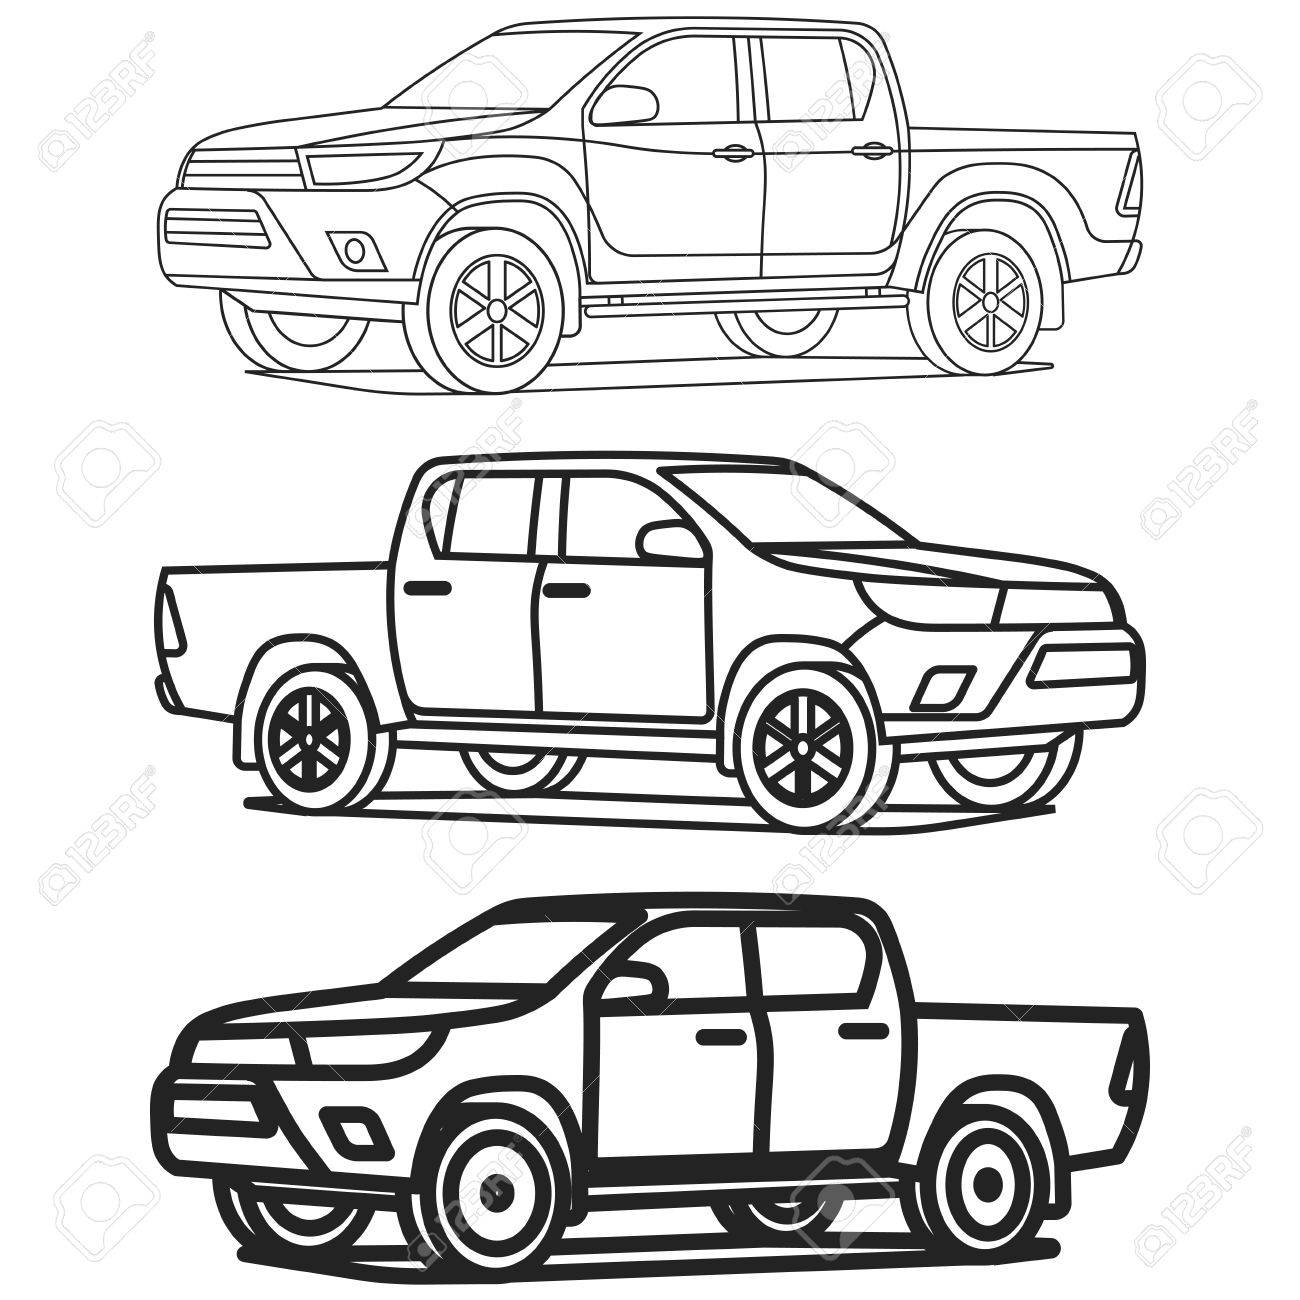 Truck Outline Drawing At Getdrawings